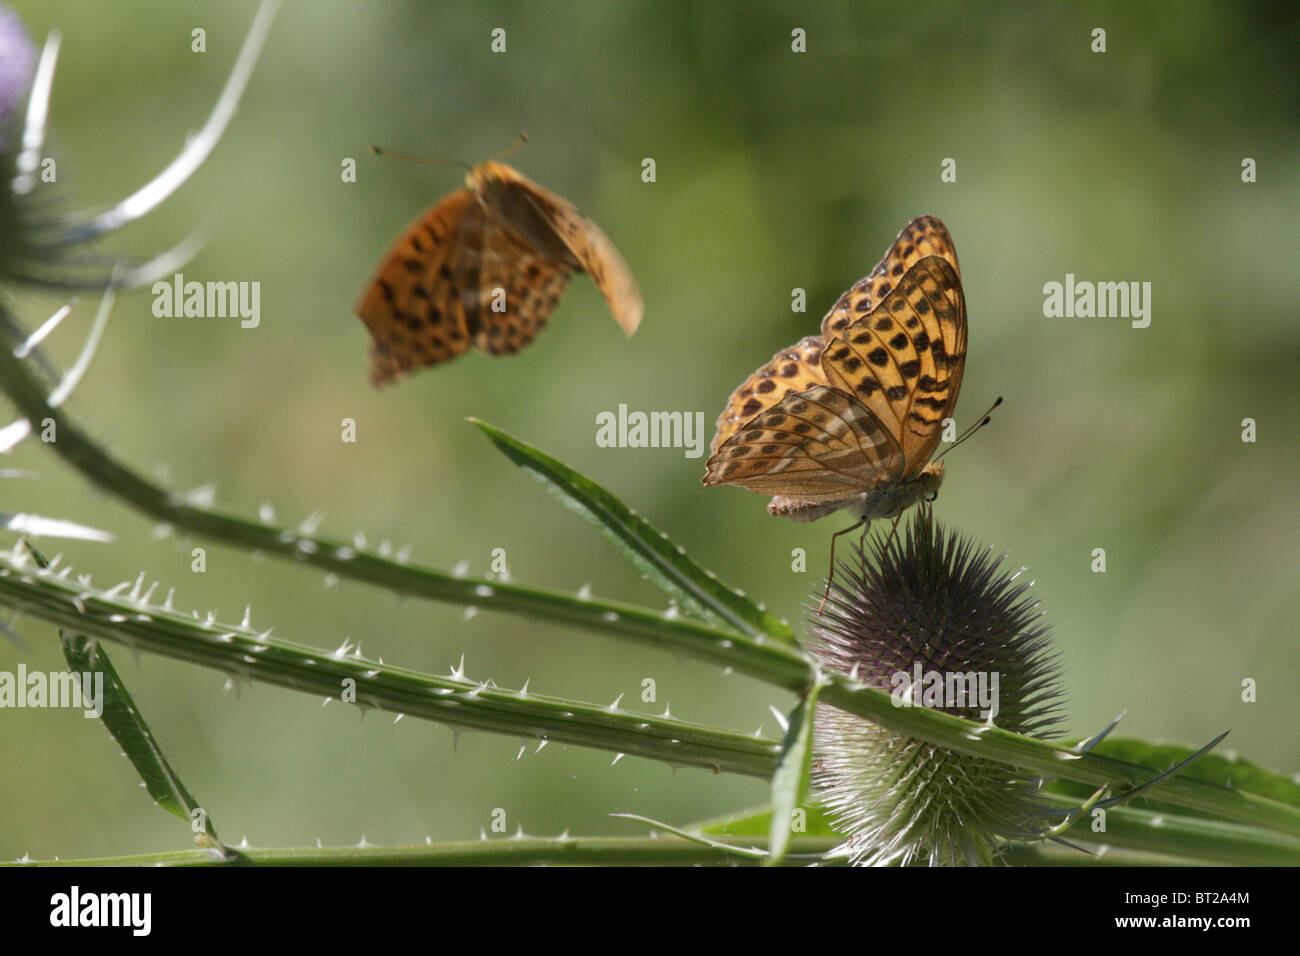 Argynnis paphia, Silver-washed Fritillary. One butterfly sits on the thistle, while another approaches to feed. - Stock Image